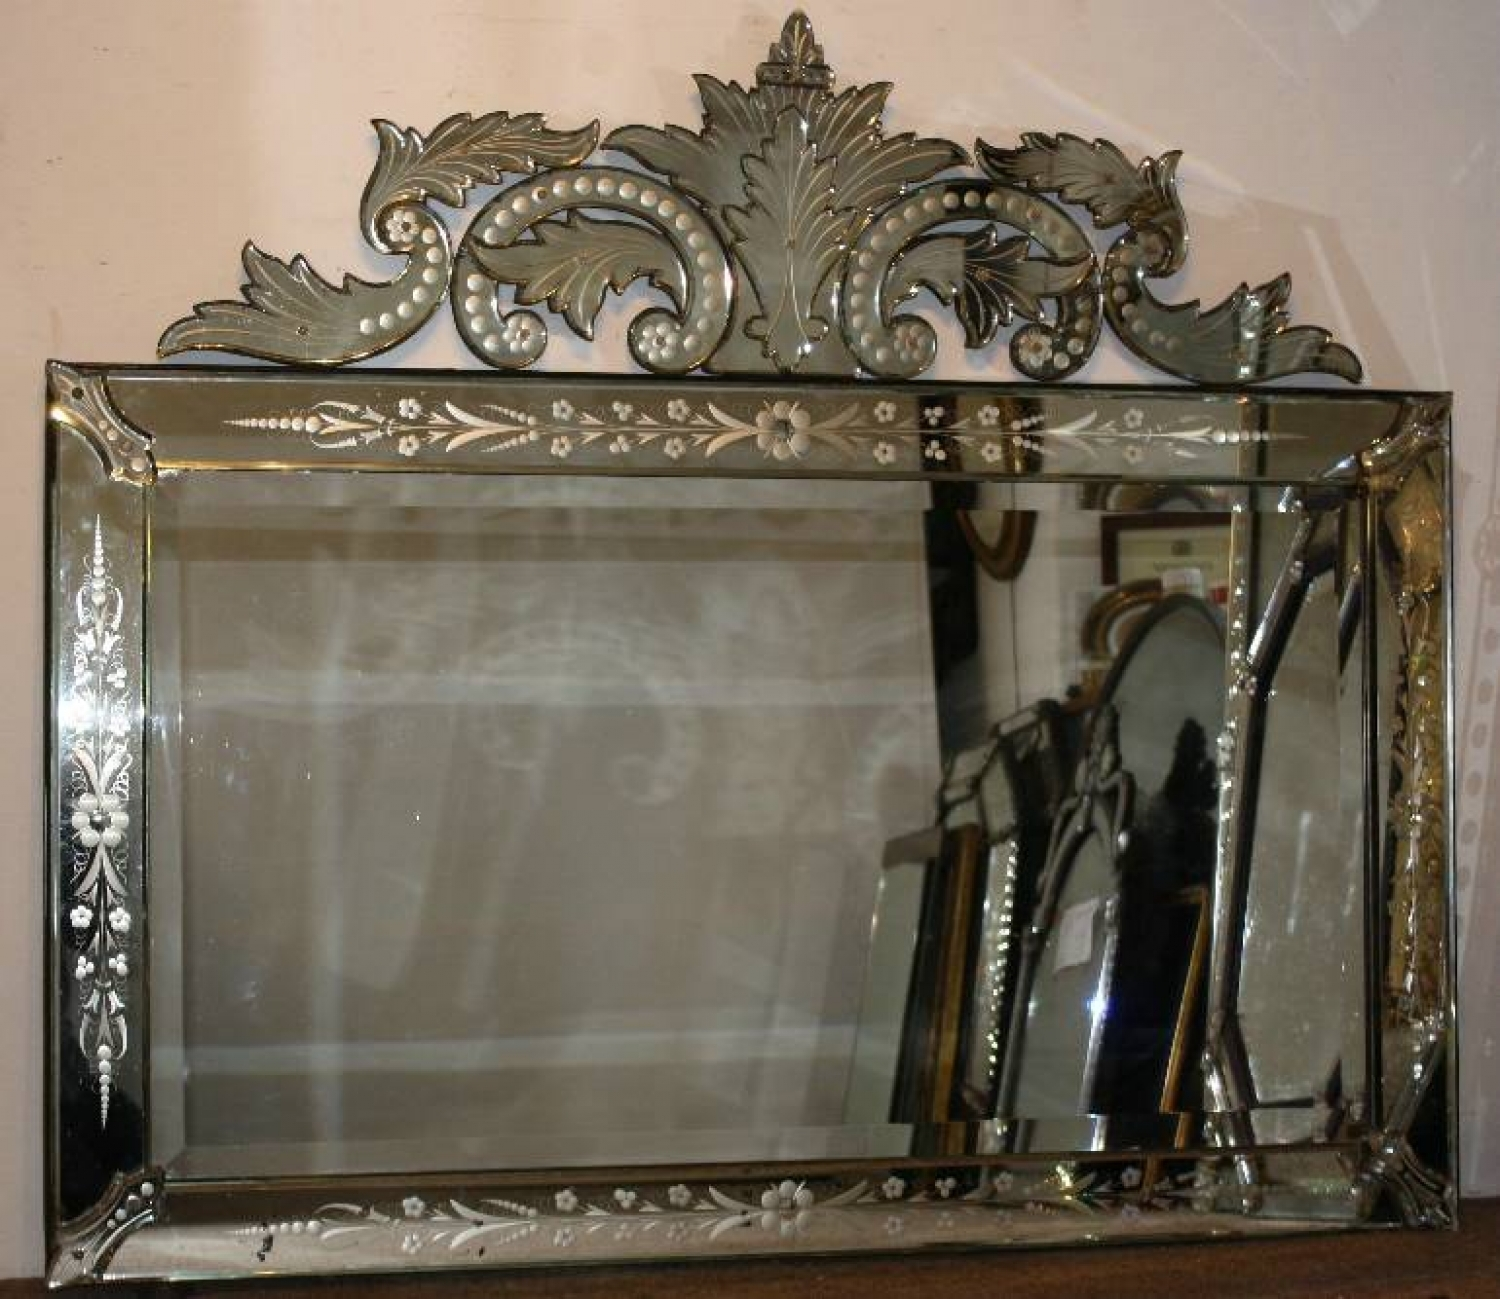 Venetian Mirror Intended For Venetian Mirror Antique (Image 14 of 15)